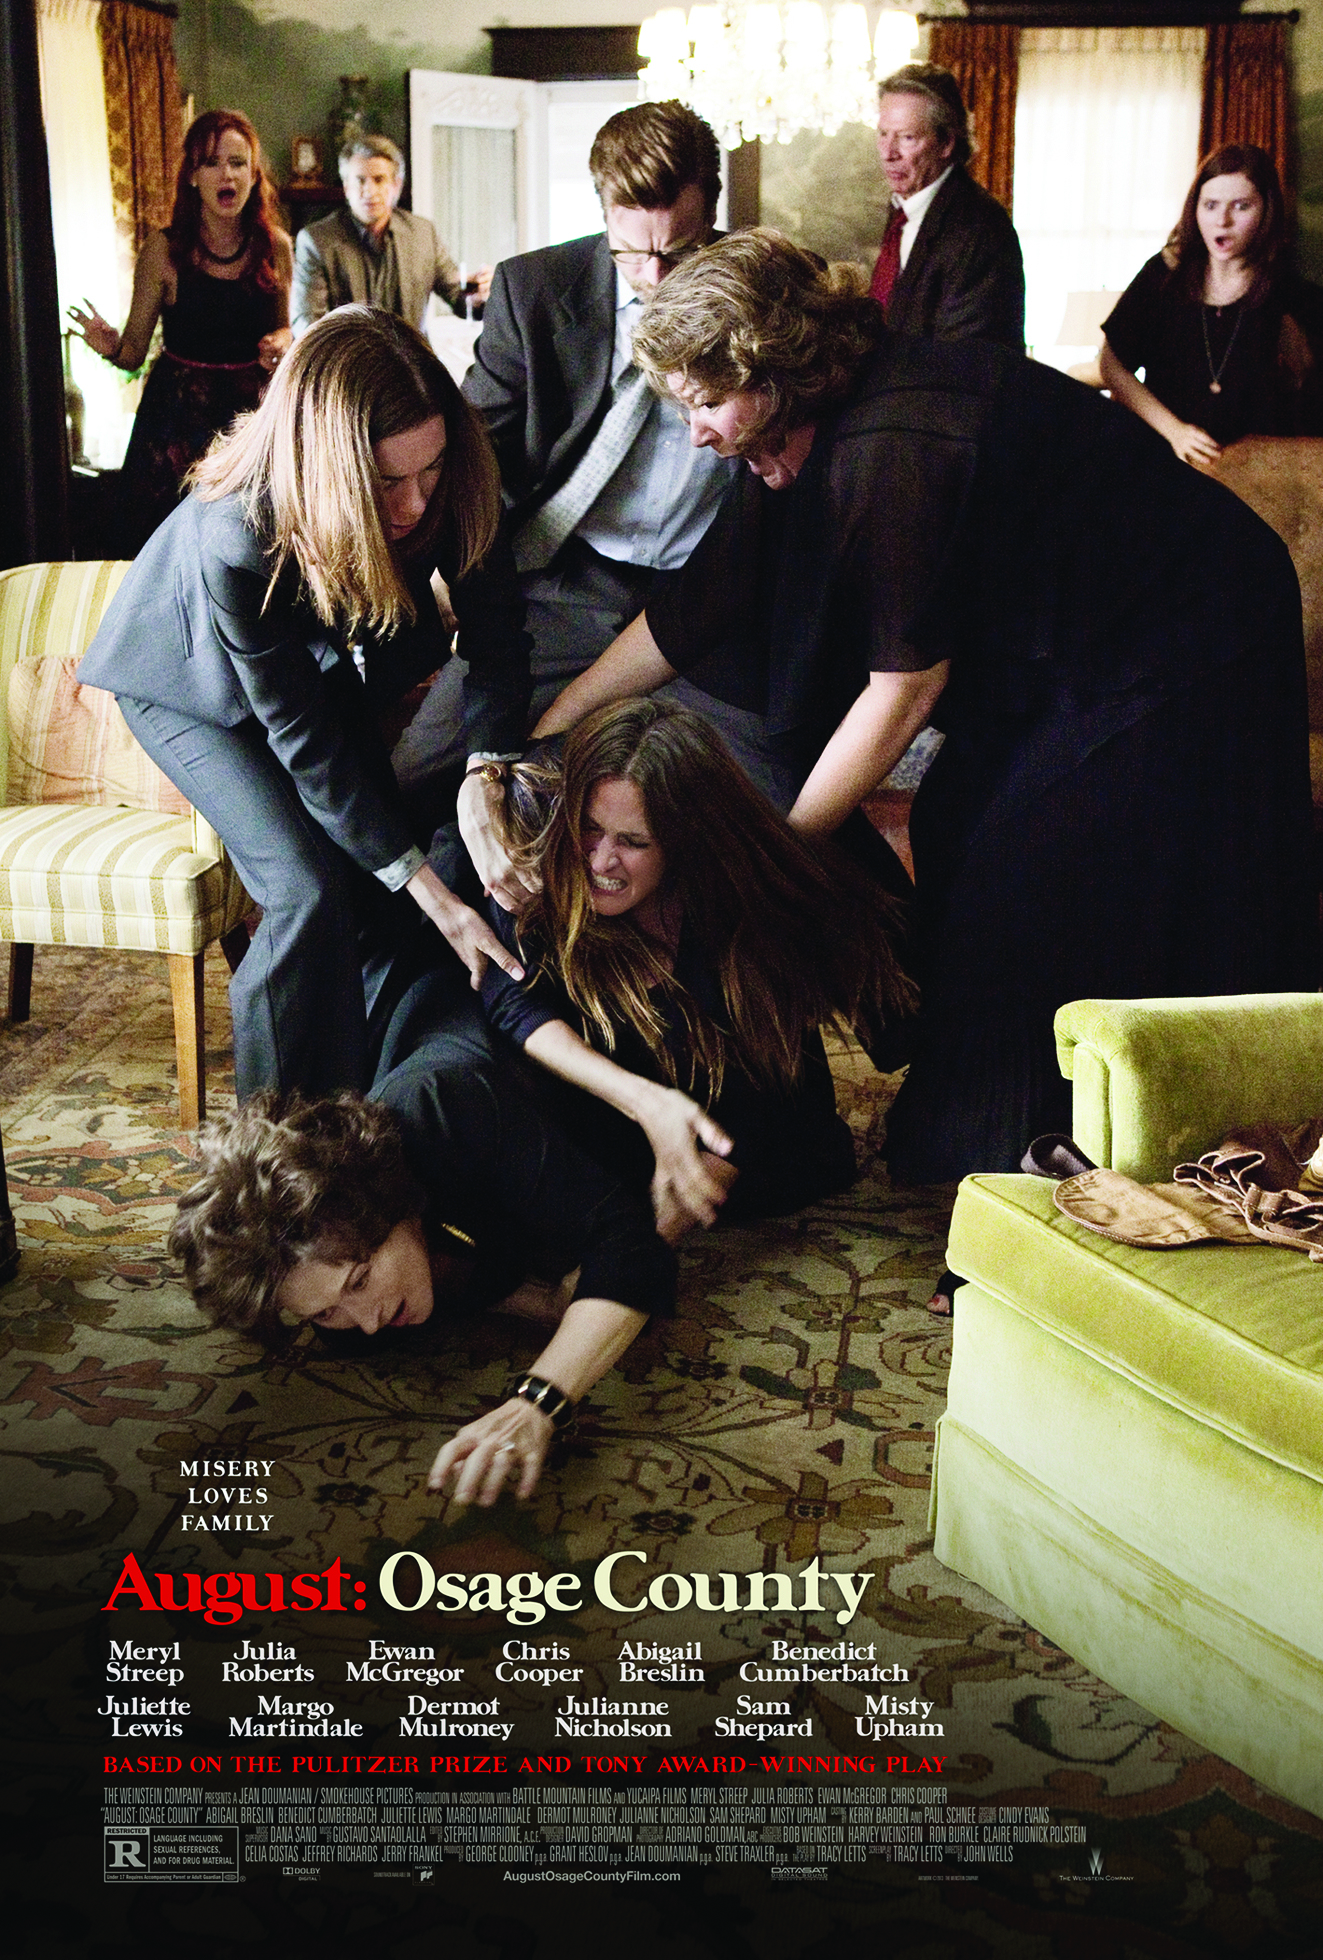 Enter to win prizes to celebrate the opening of August: Osage County!